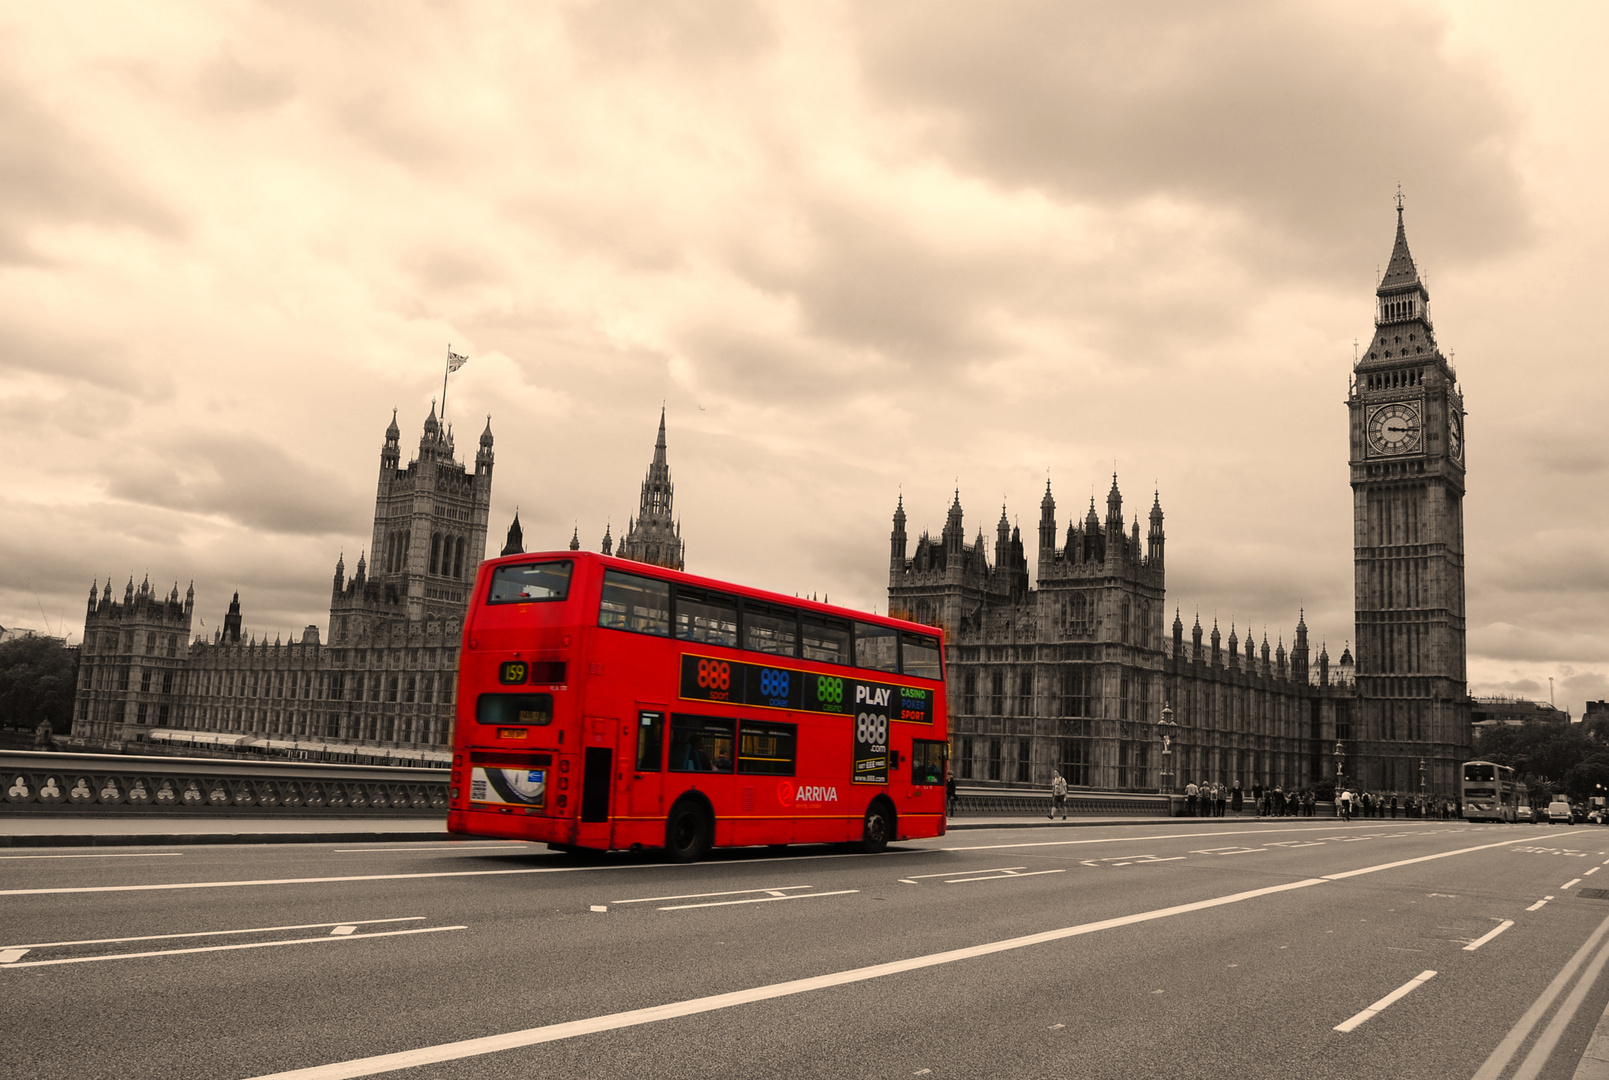 TYPICAL OF LONDON